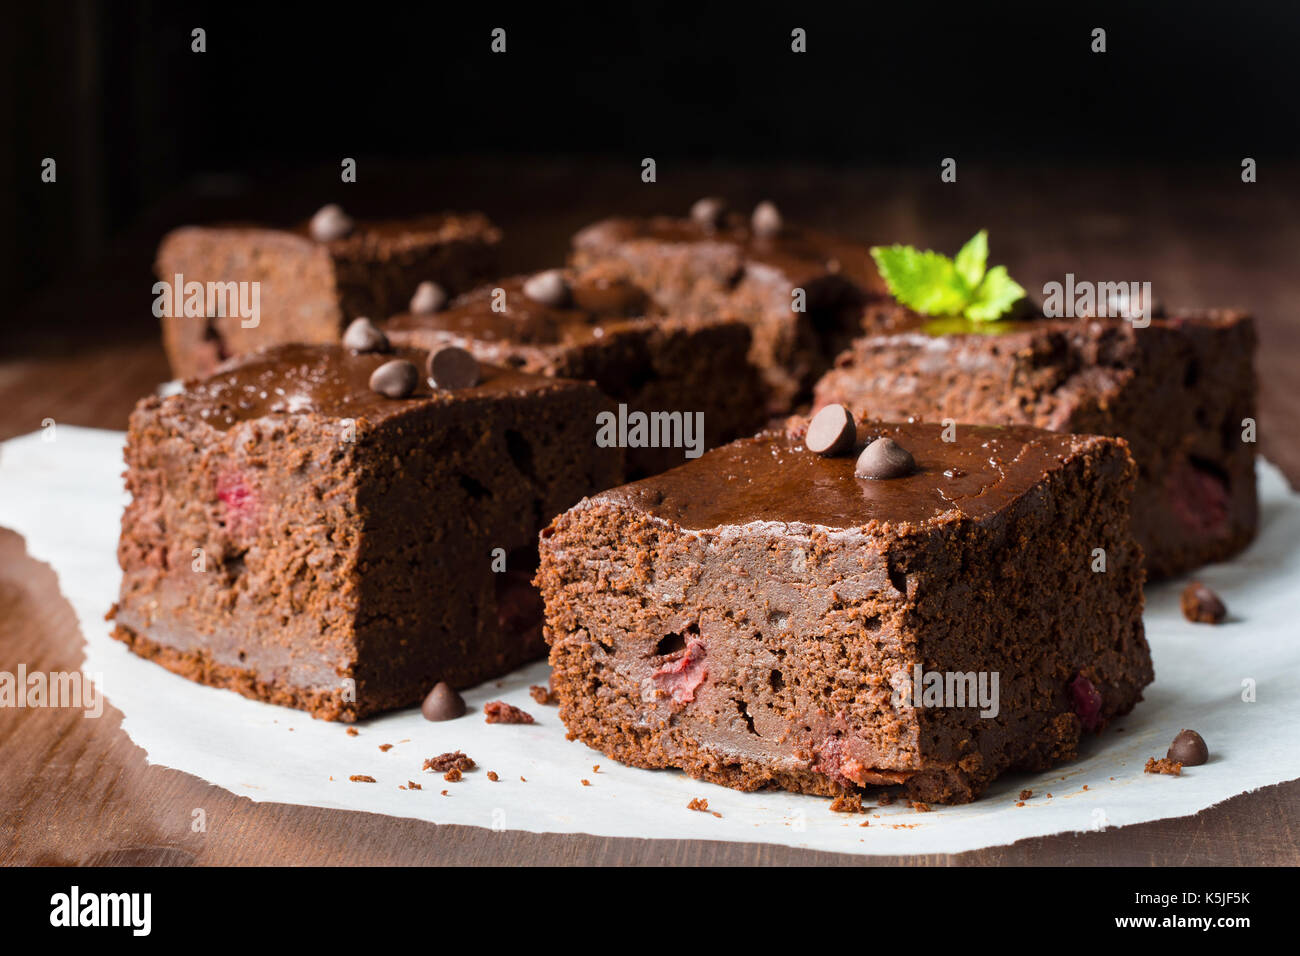 Dark chocolate brownies decorated with mint leaf on wooden table. Closeup view horizontal composition - Stock Image